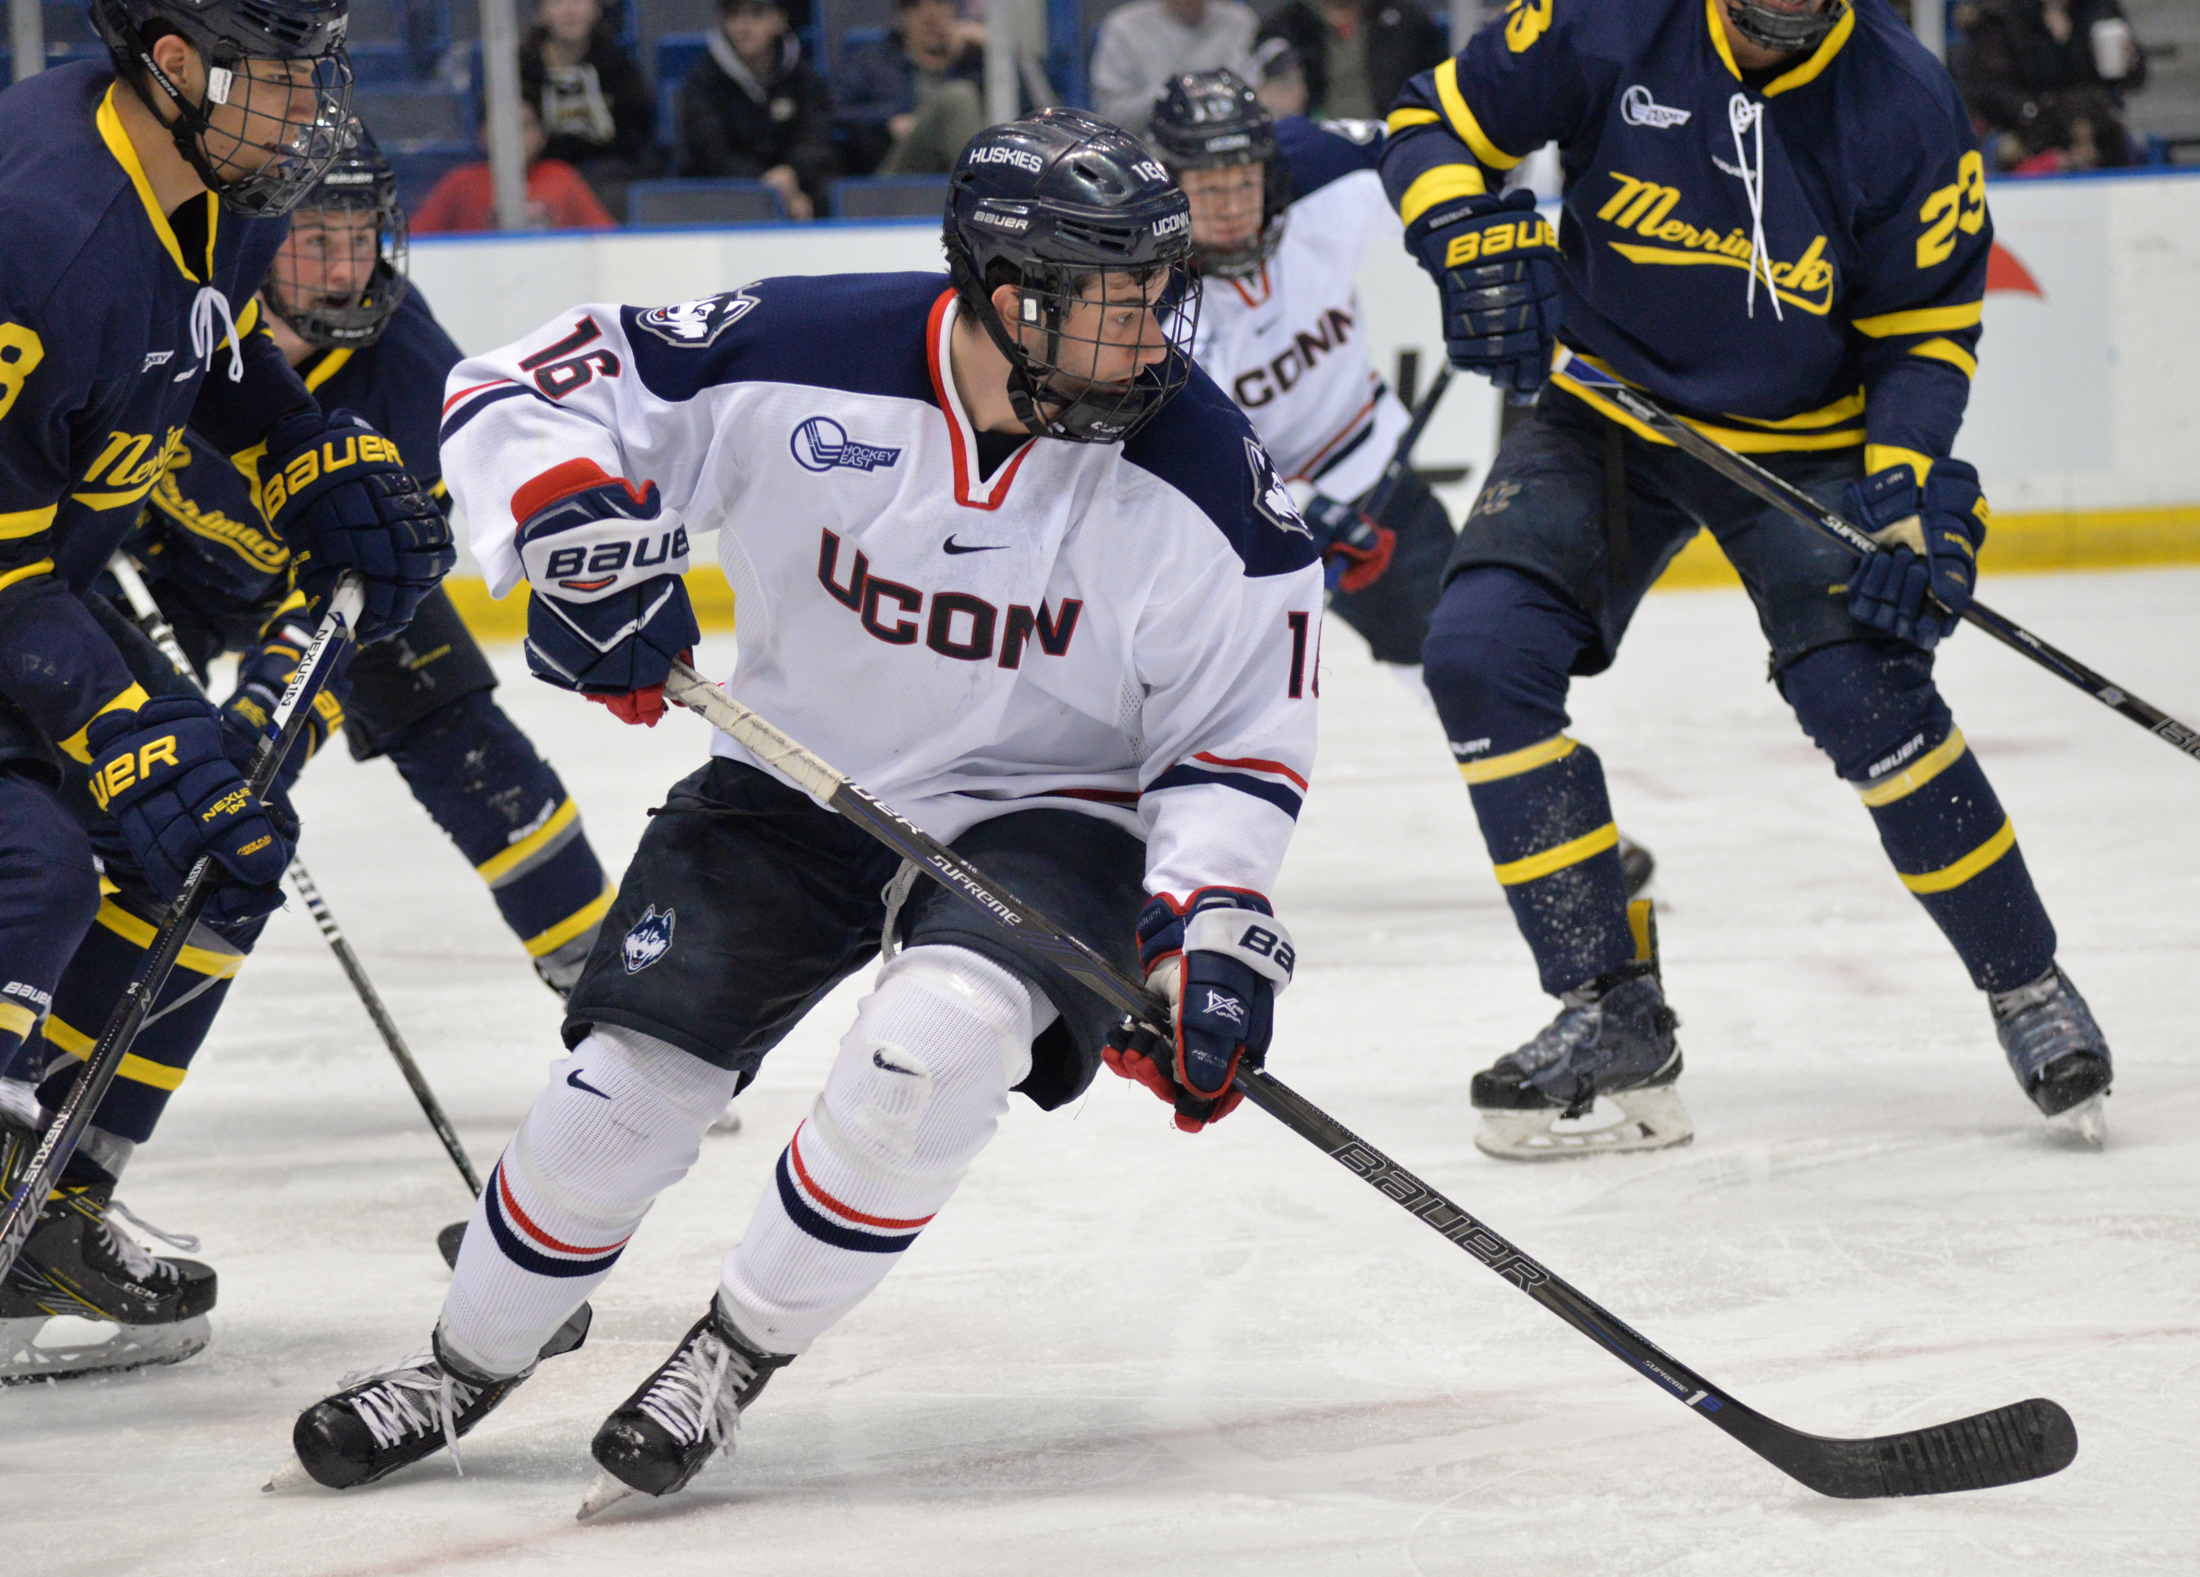 Karl El-Mir looks for a pass in Saturday's game against Merrimack. The Huskies tied the Warriors 2-2 at the XL Center. (Amar Batra/The Daily Campus)